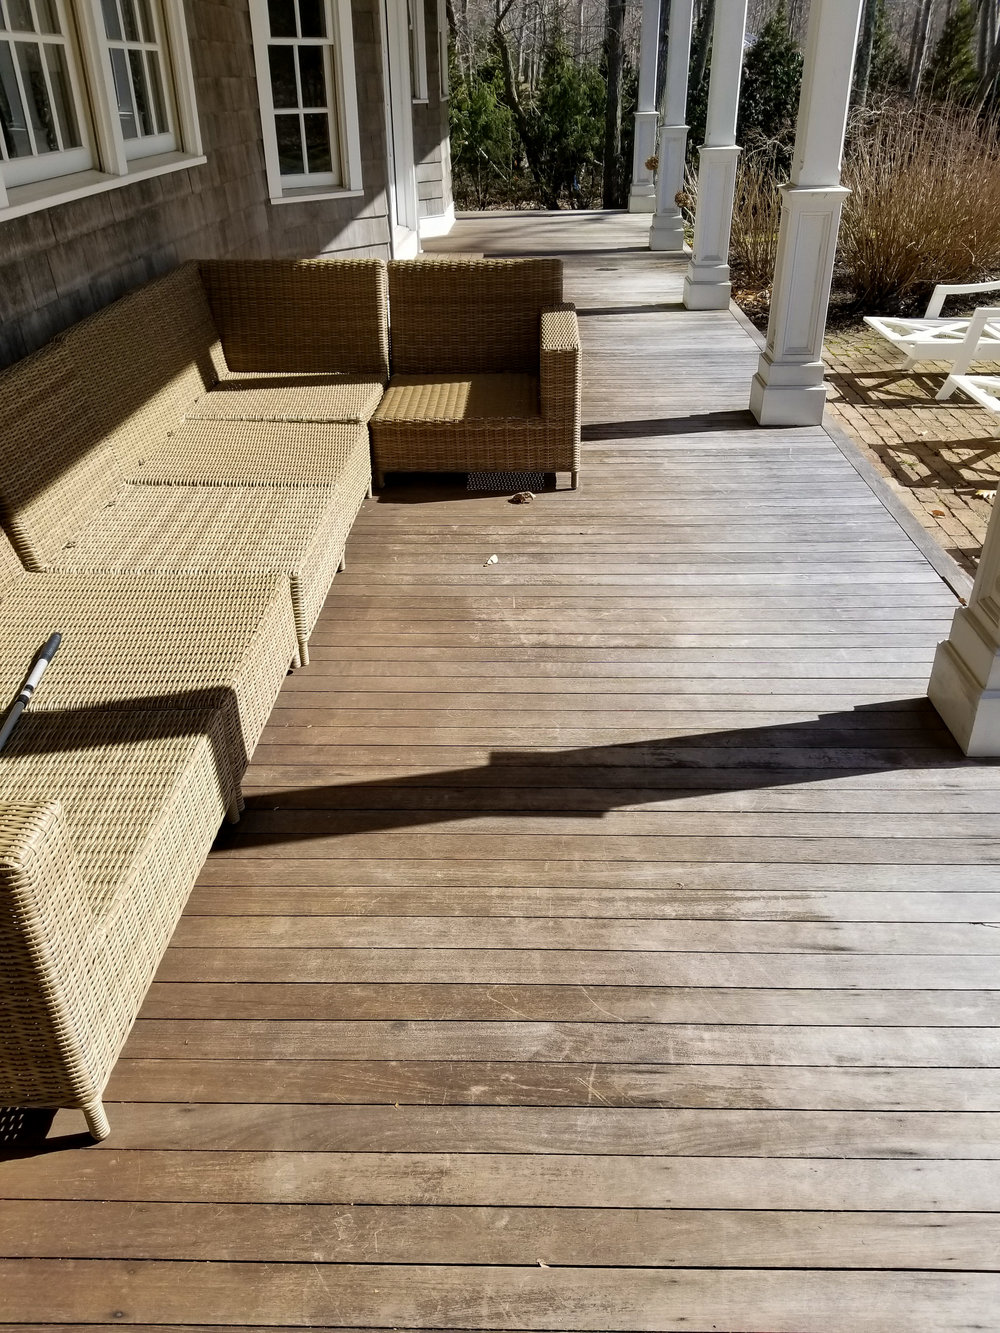 Mahogany Deck Resurface & PVC Column Install Before